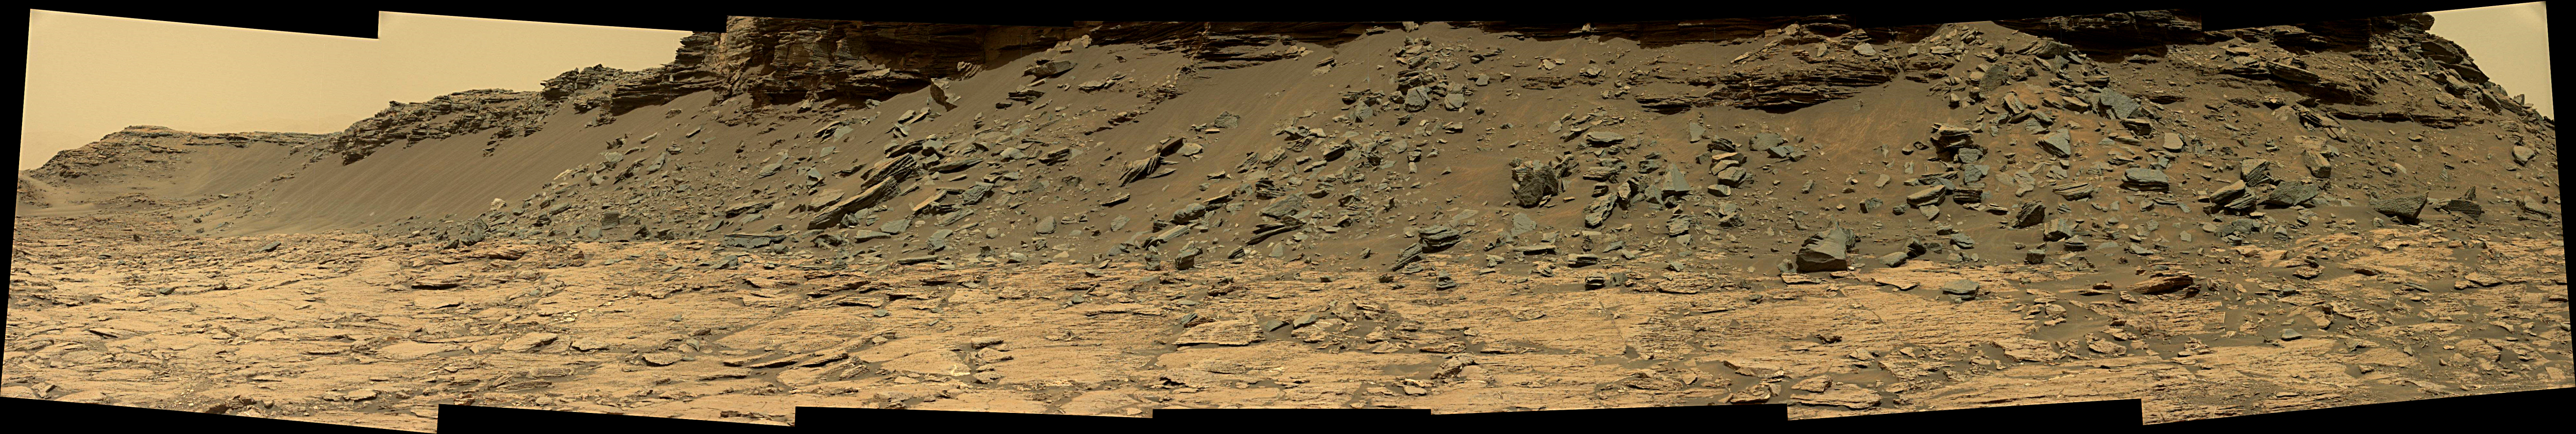 panoramic-curiosity-rover-view-2e-sol-1455-was-life-on-mars